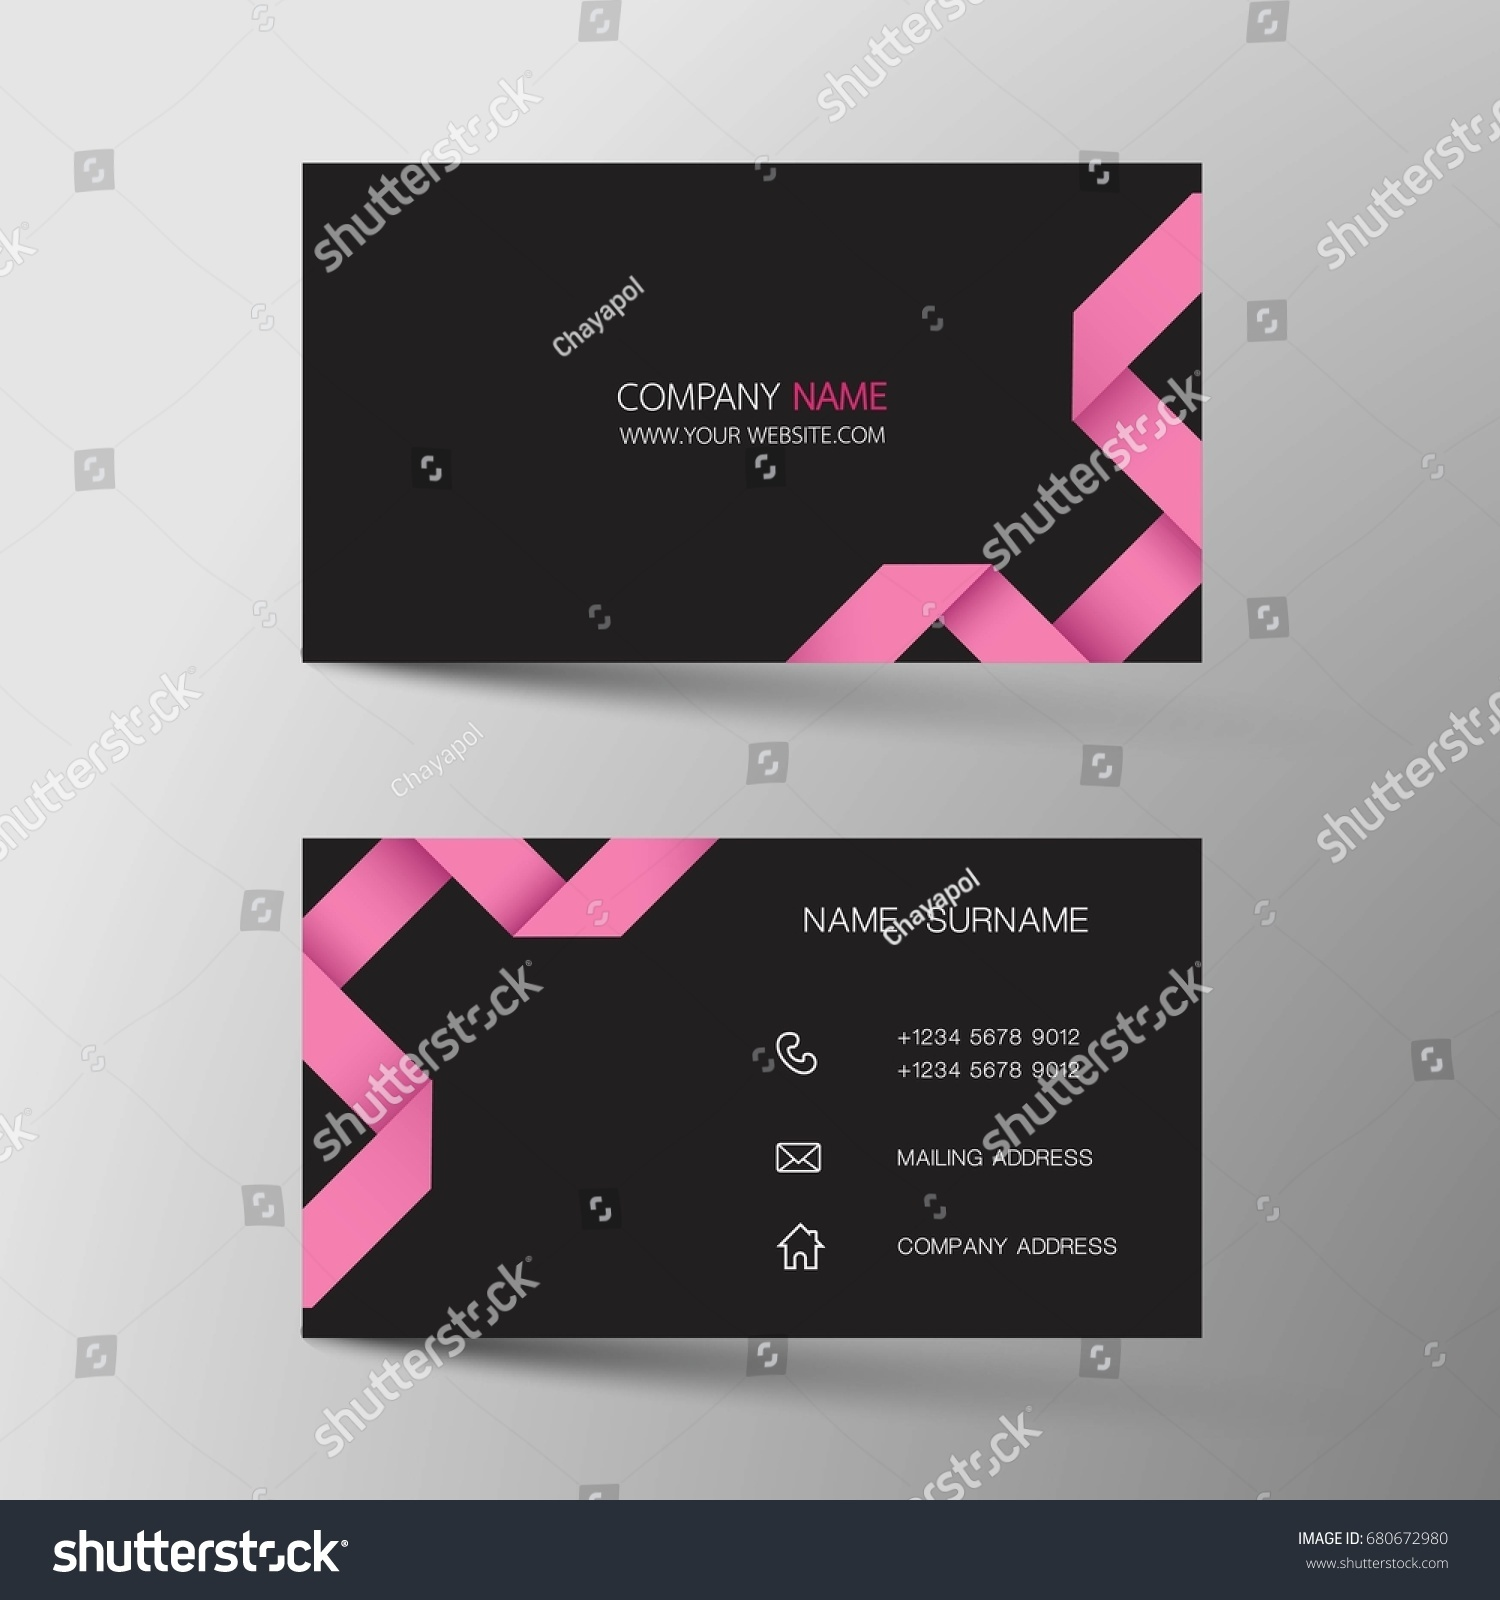 Business Card Inspired By Origamivector Modern Stock Vector ...